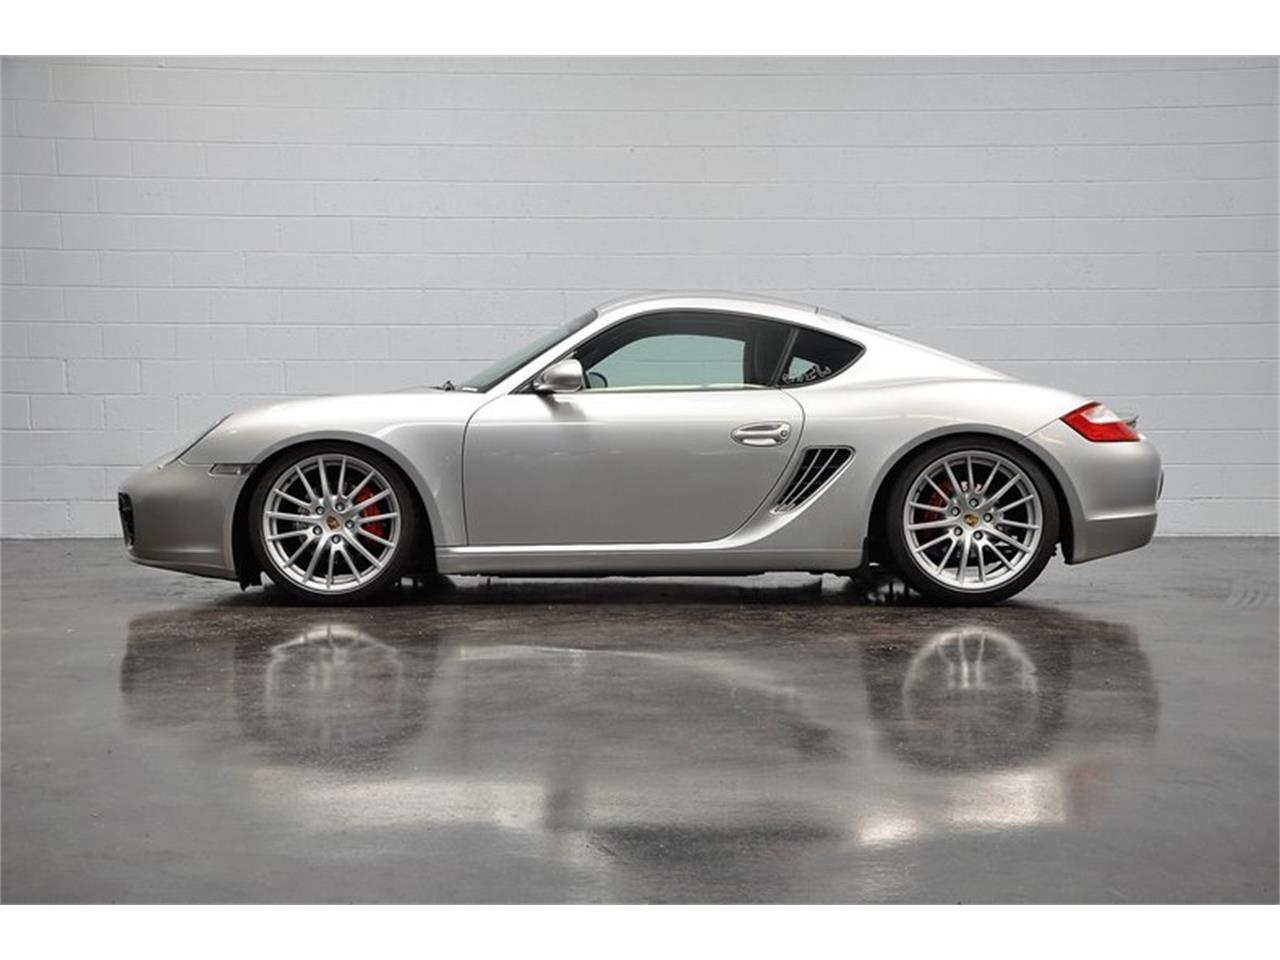 For Sale: 2006 Porsche Cayman in Costa Mesa, California